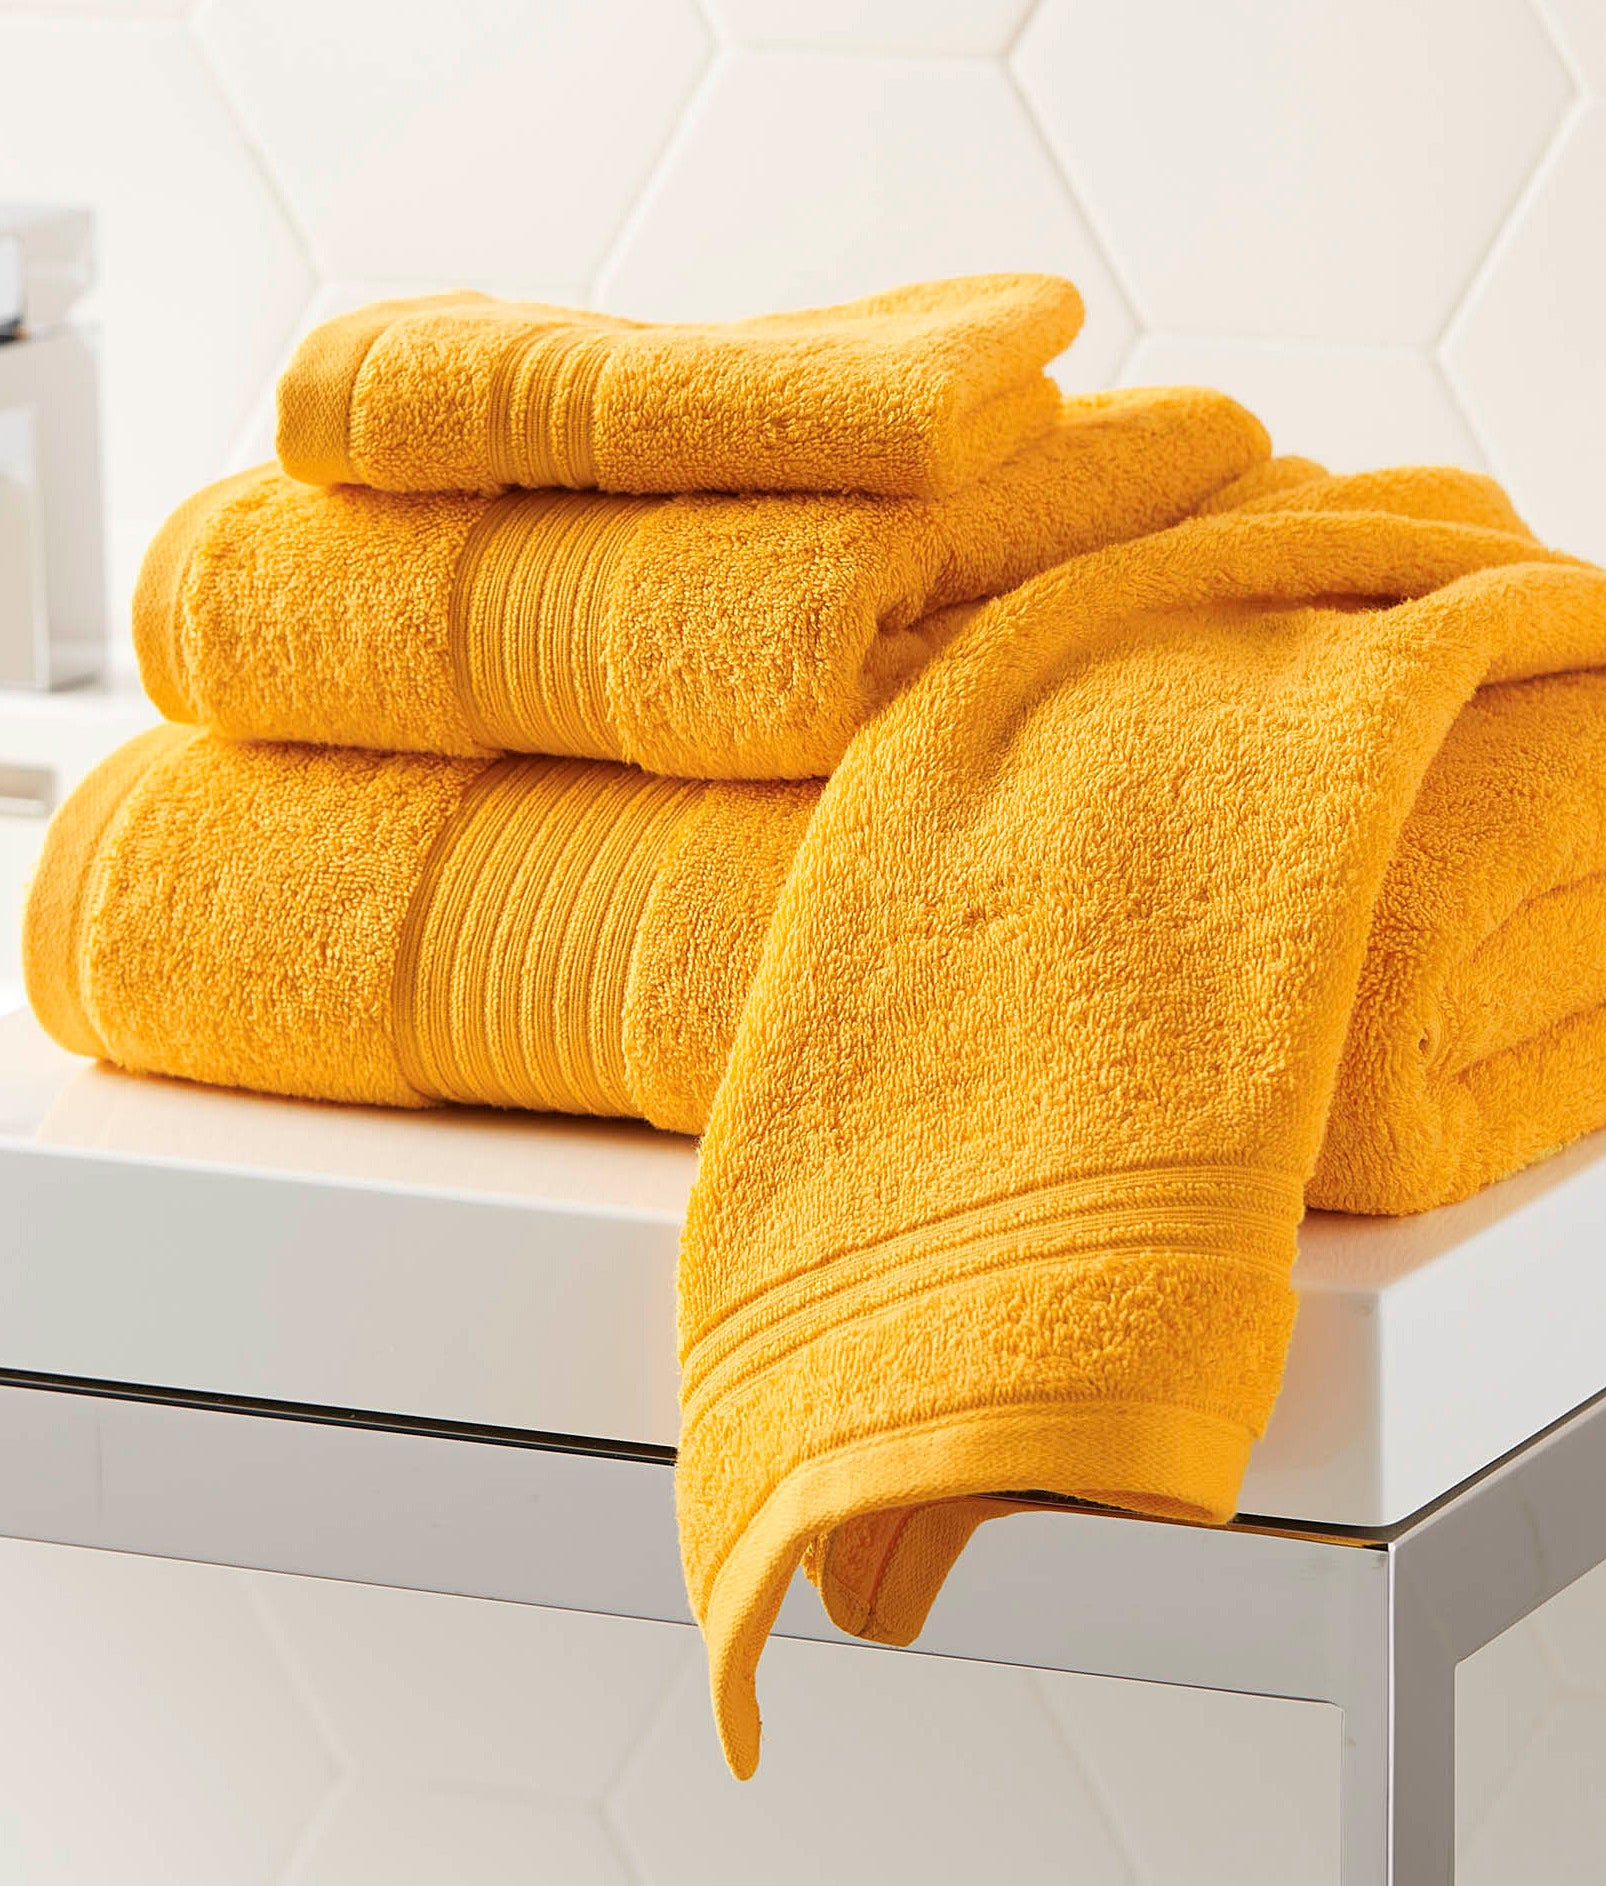 Four towels folded on top of each other